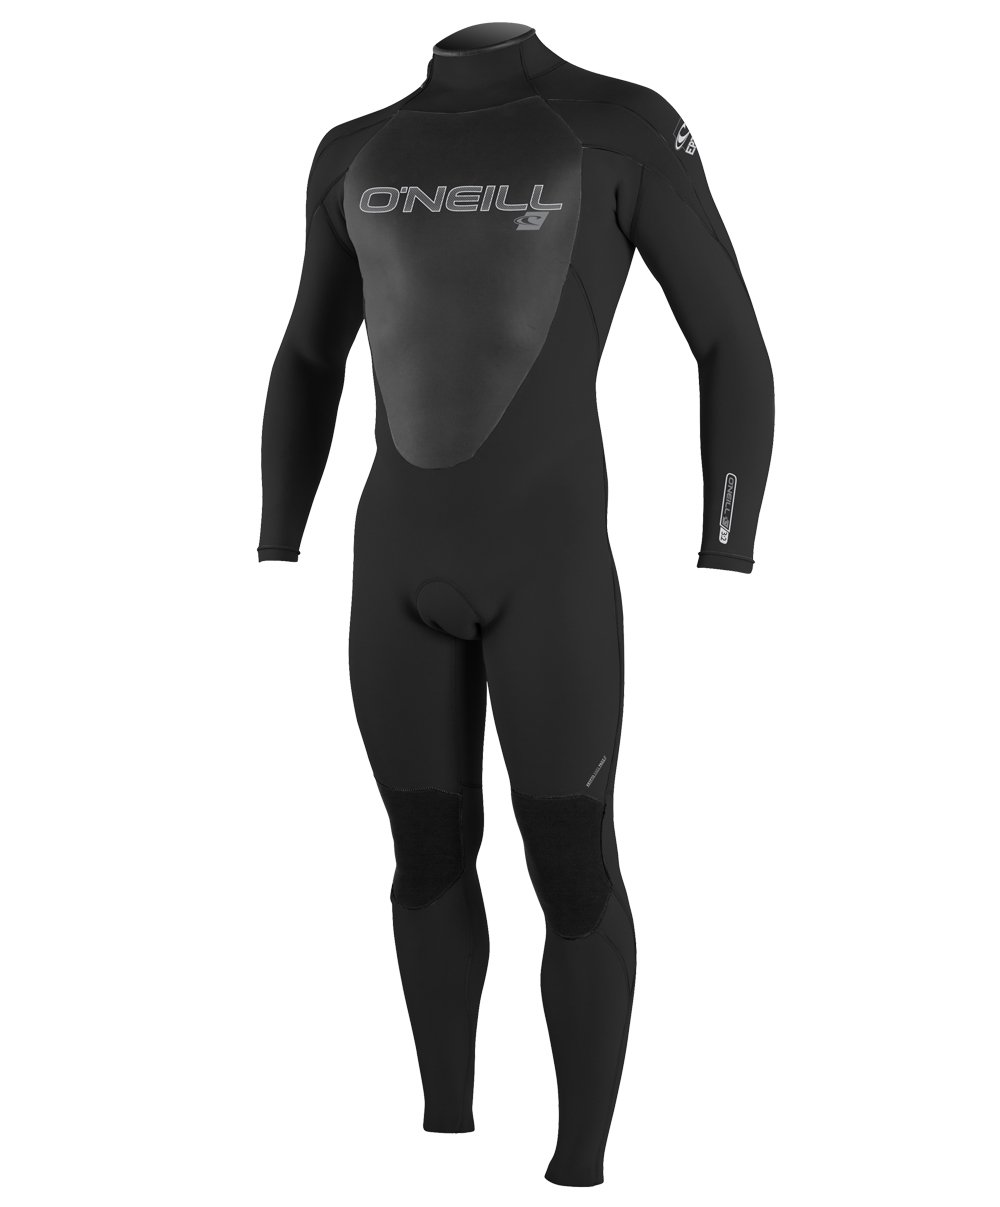 O'Neill Men's Epic 3/2mm Back Zip Full Wetsuit, Black/Black/Black, X-Small